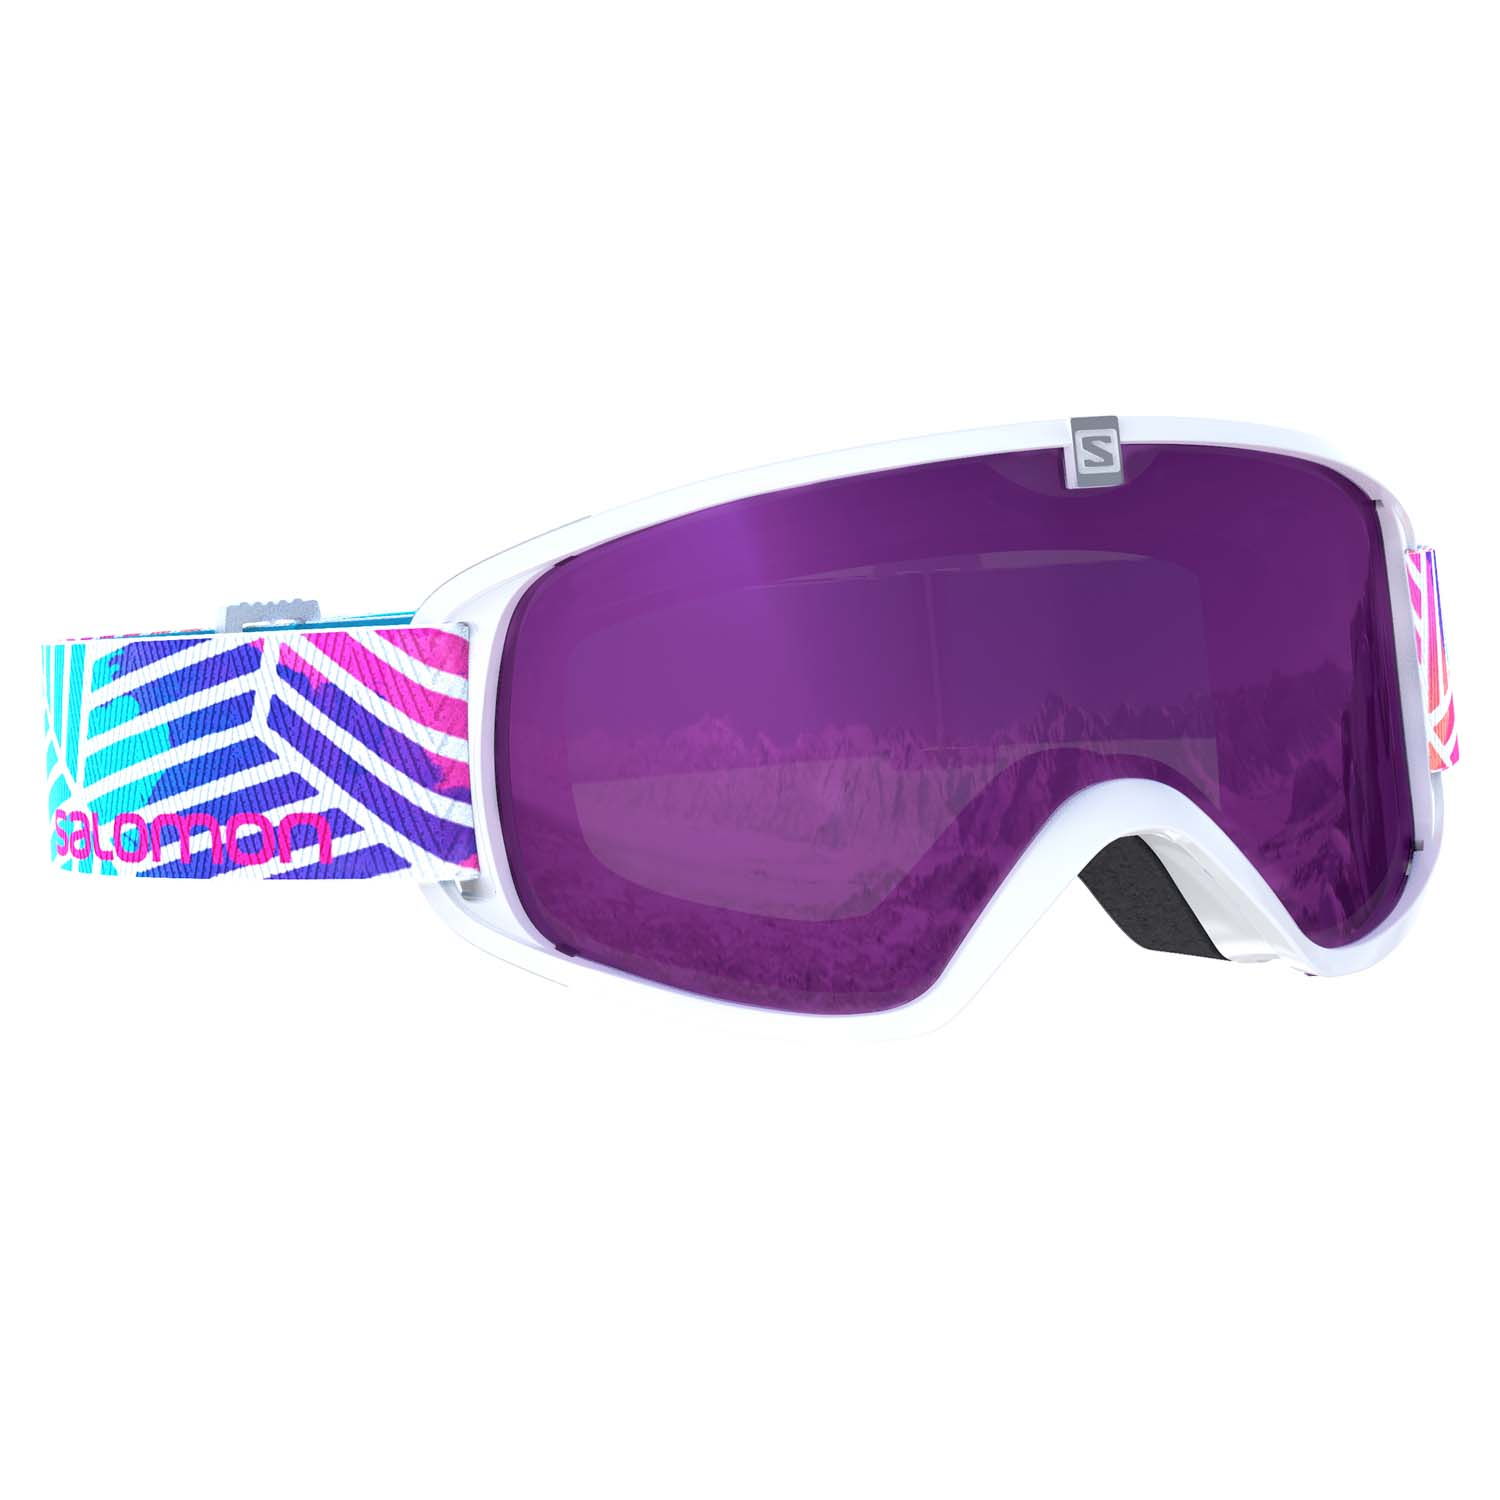 Salomon Trigger Junior Goggle White Lotus/Universal Ruby Lens 2020